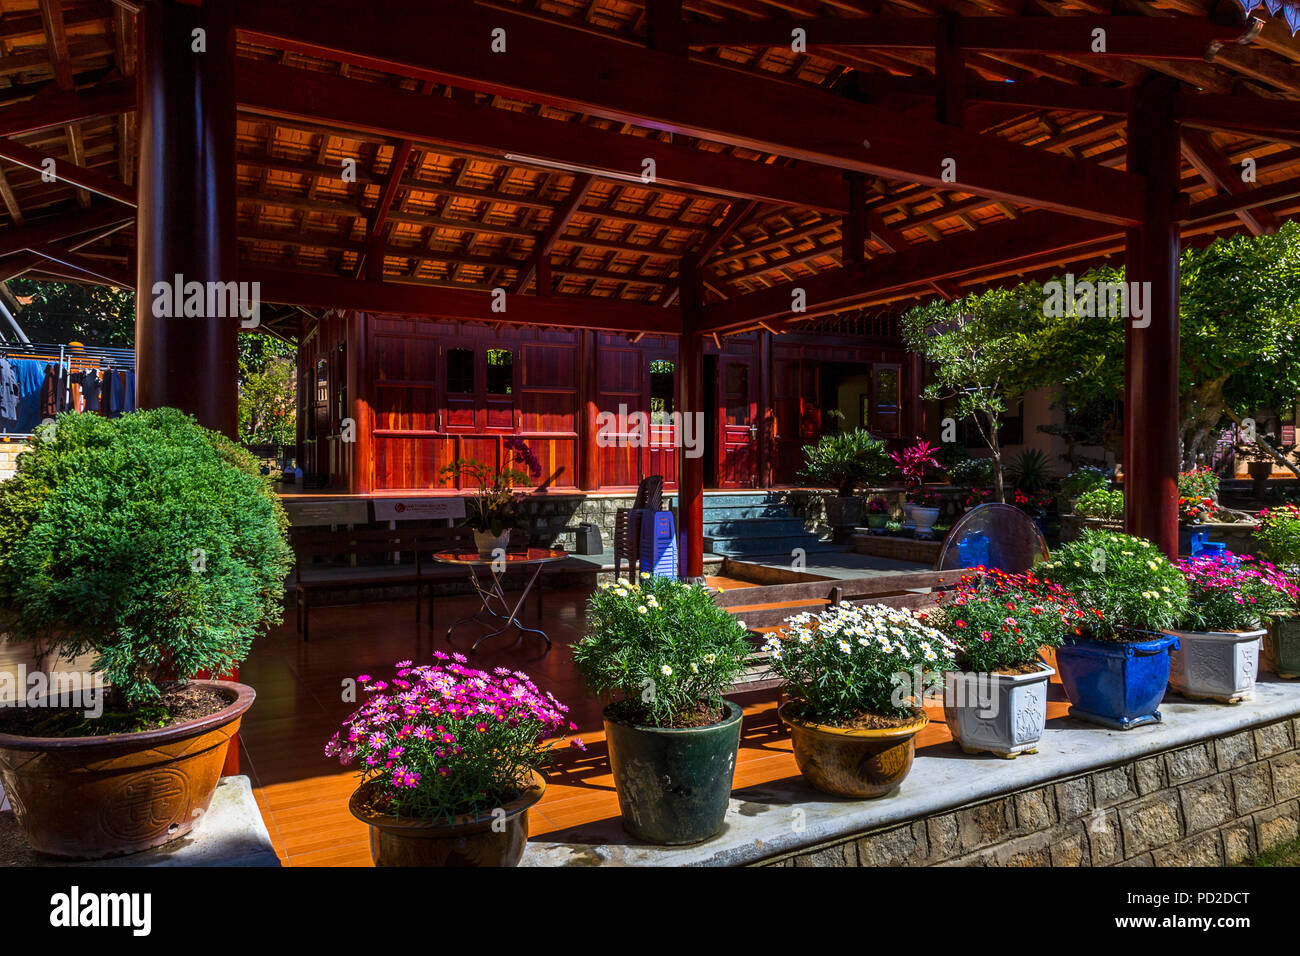 Buddhist temple Thien Vien Truc at the end of the Cap Treo cable car transportation. - Stock Image